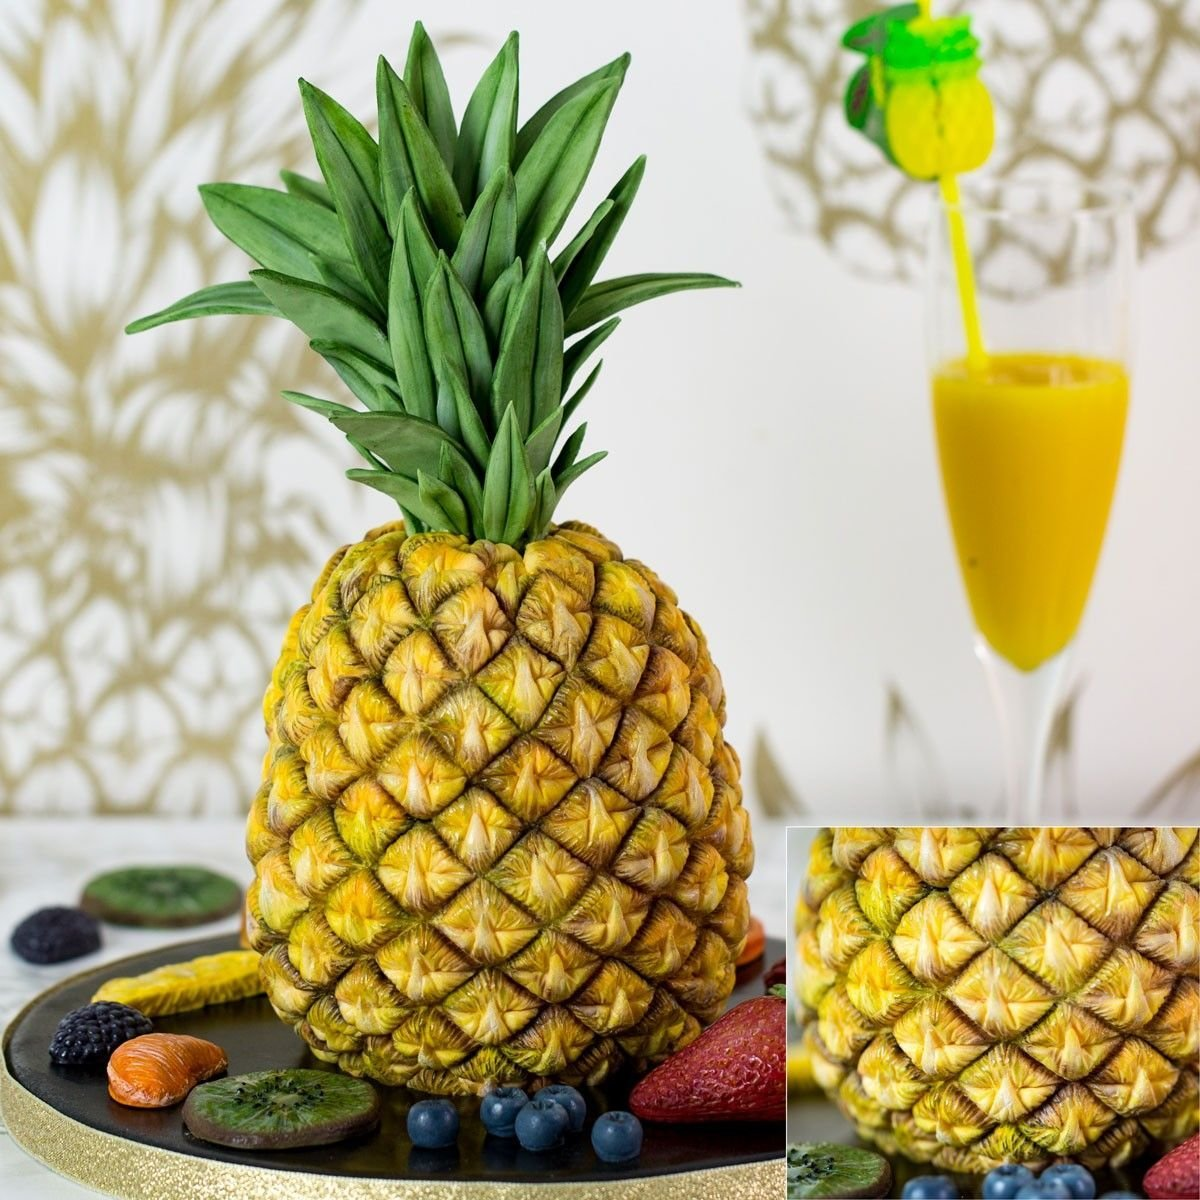 Karen Davies Silicone Mould -TROPICAL PINEAPPLE -Καλούπι Σιλικόνης  Τροπικός Ανανάς